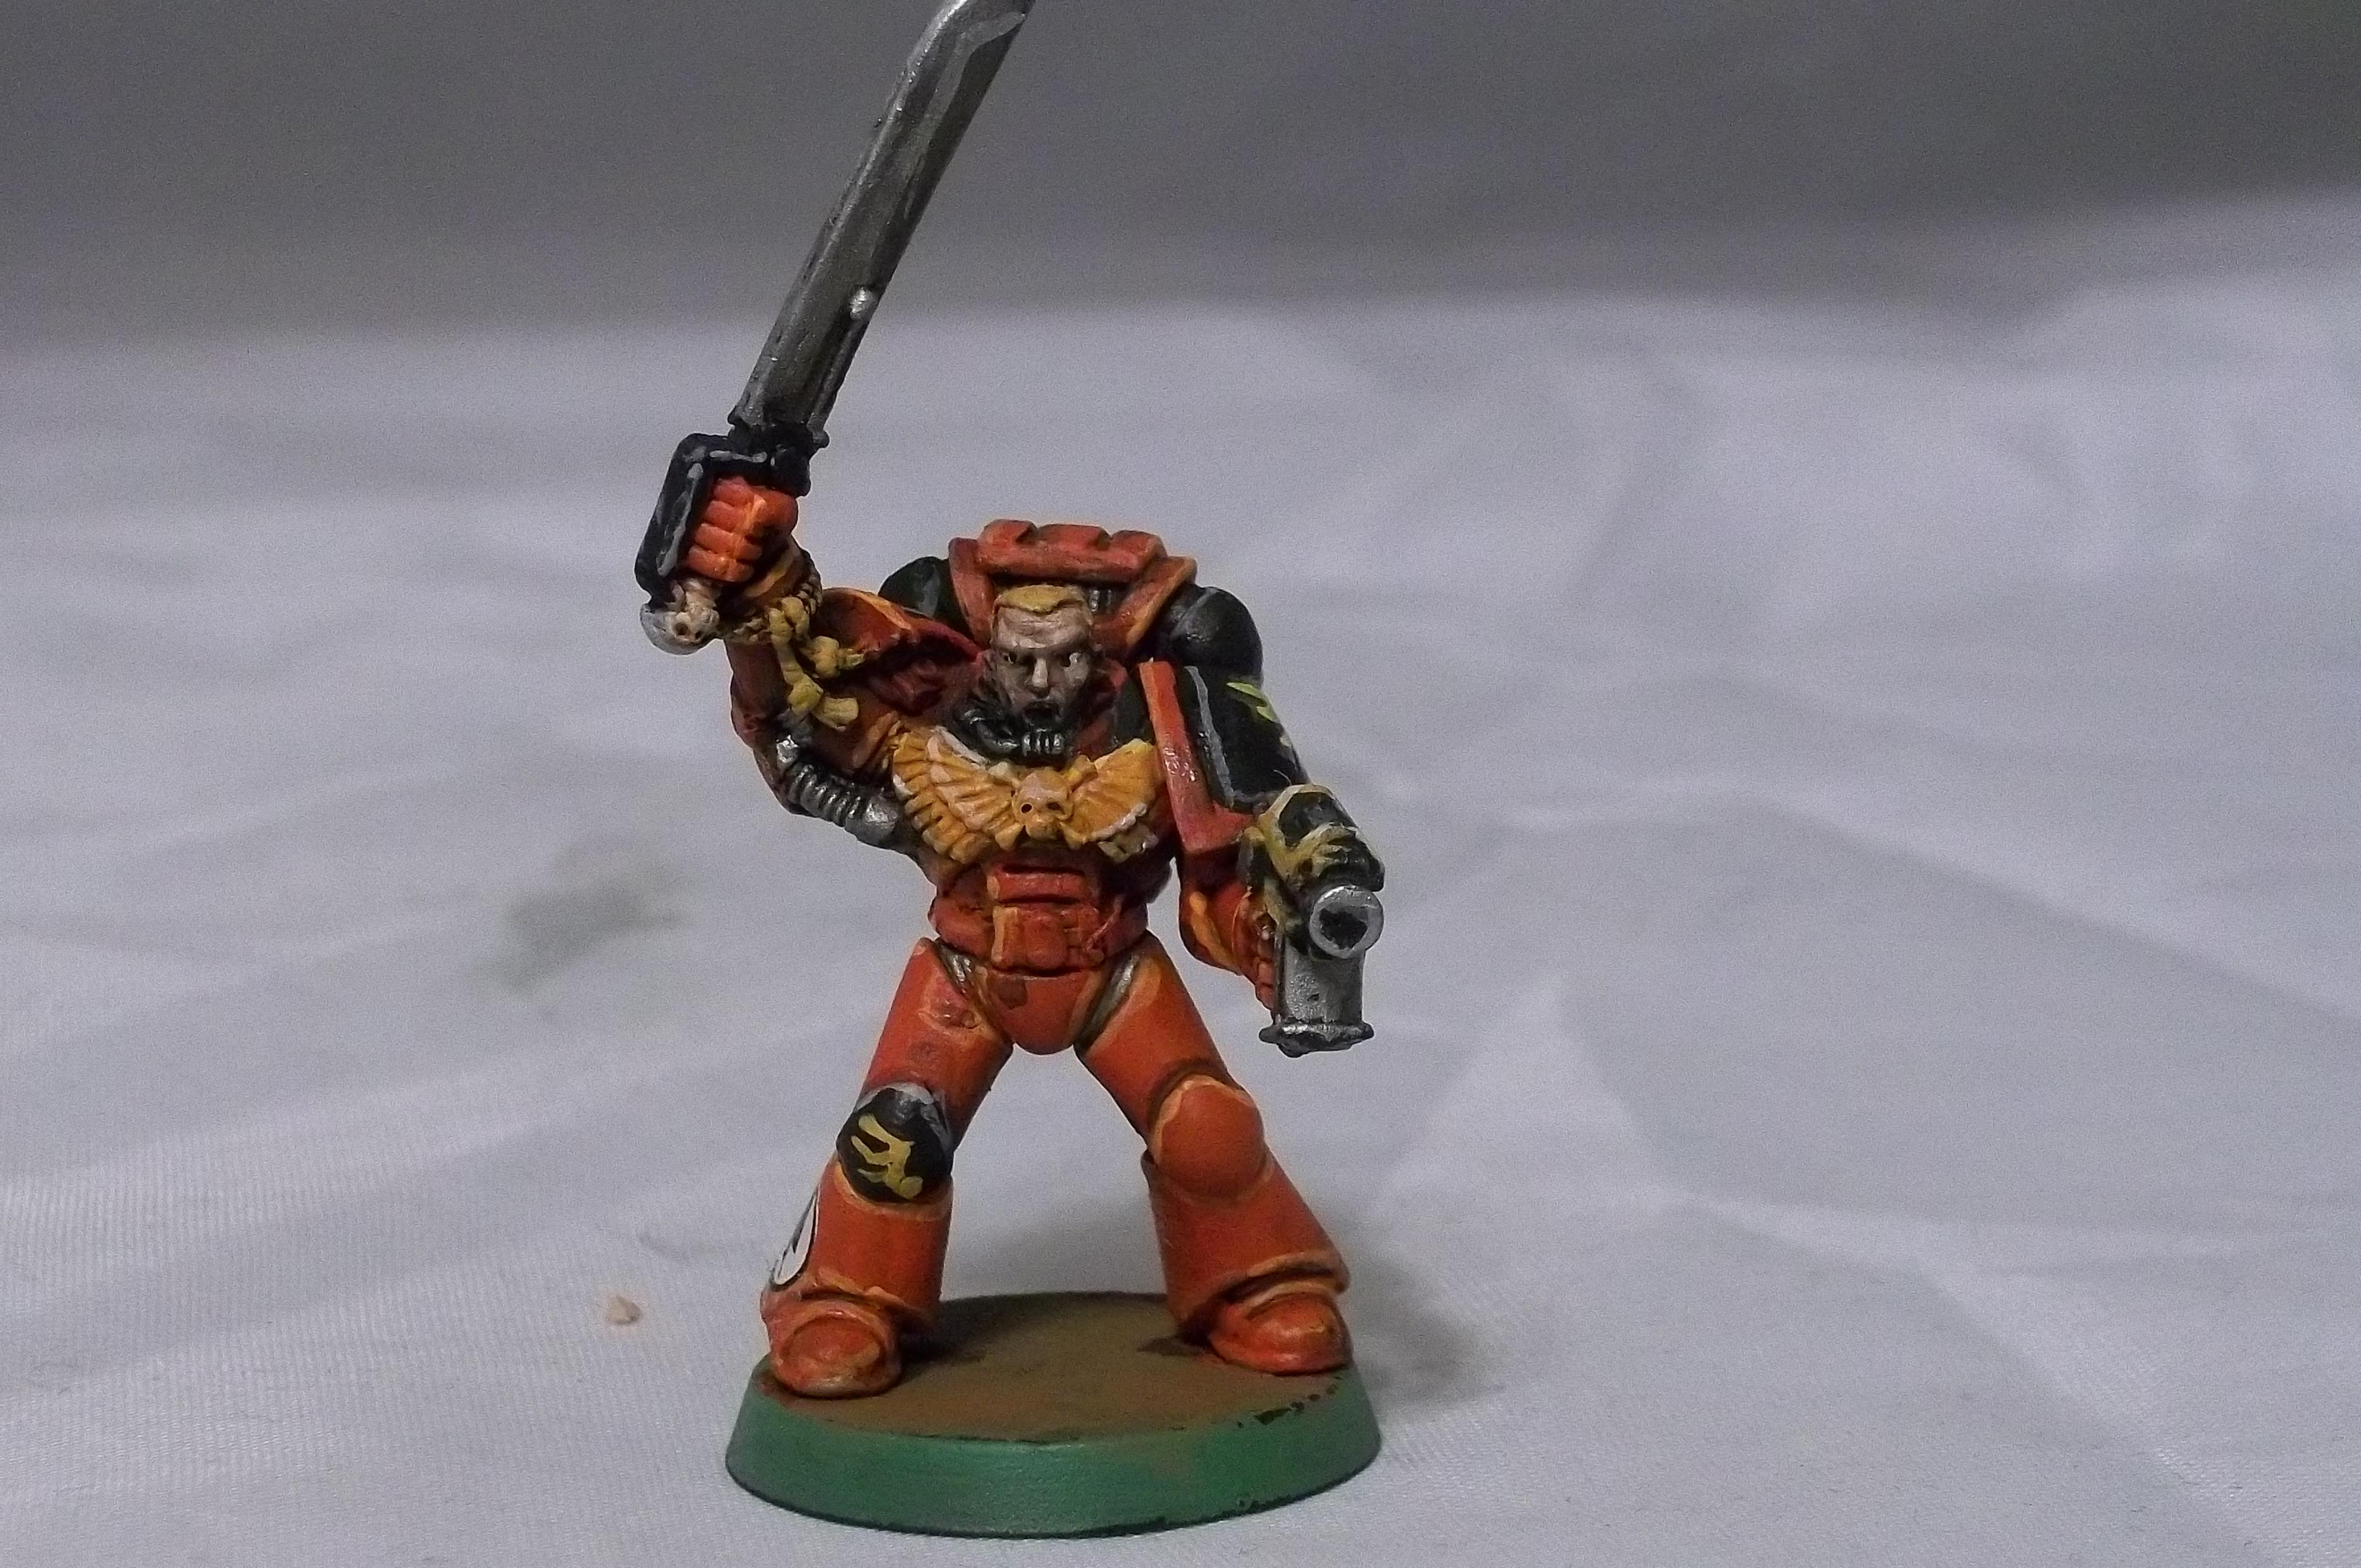 Blood Angels, Retro, Sergeant, Space Marines